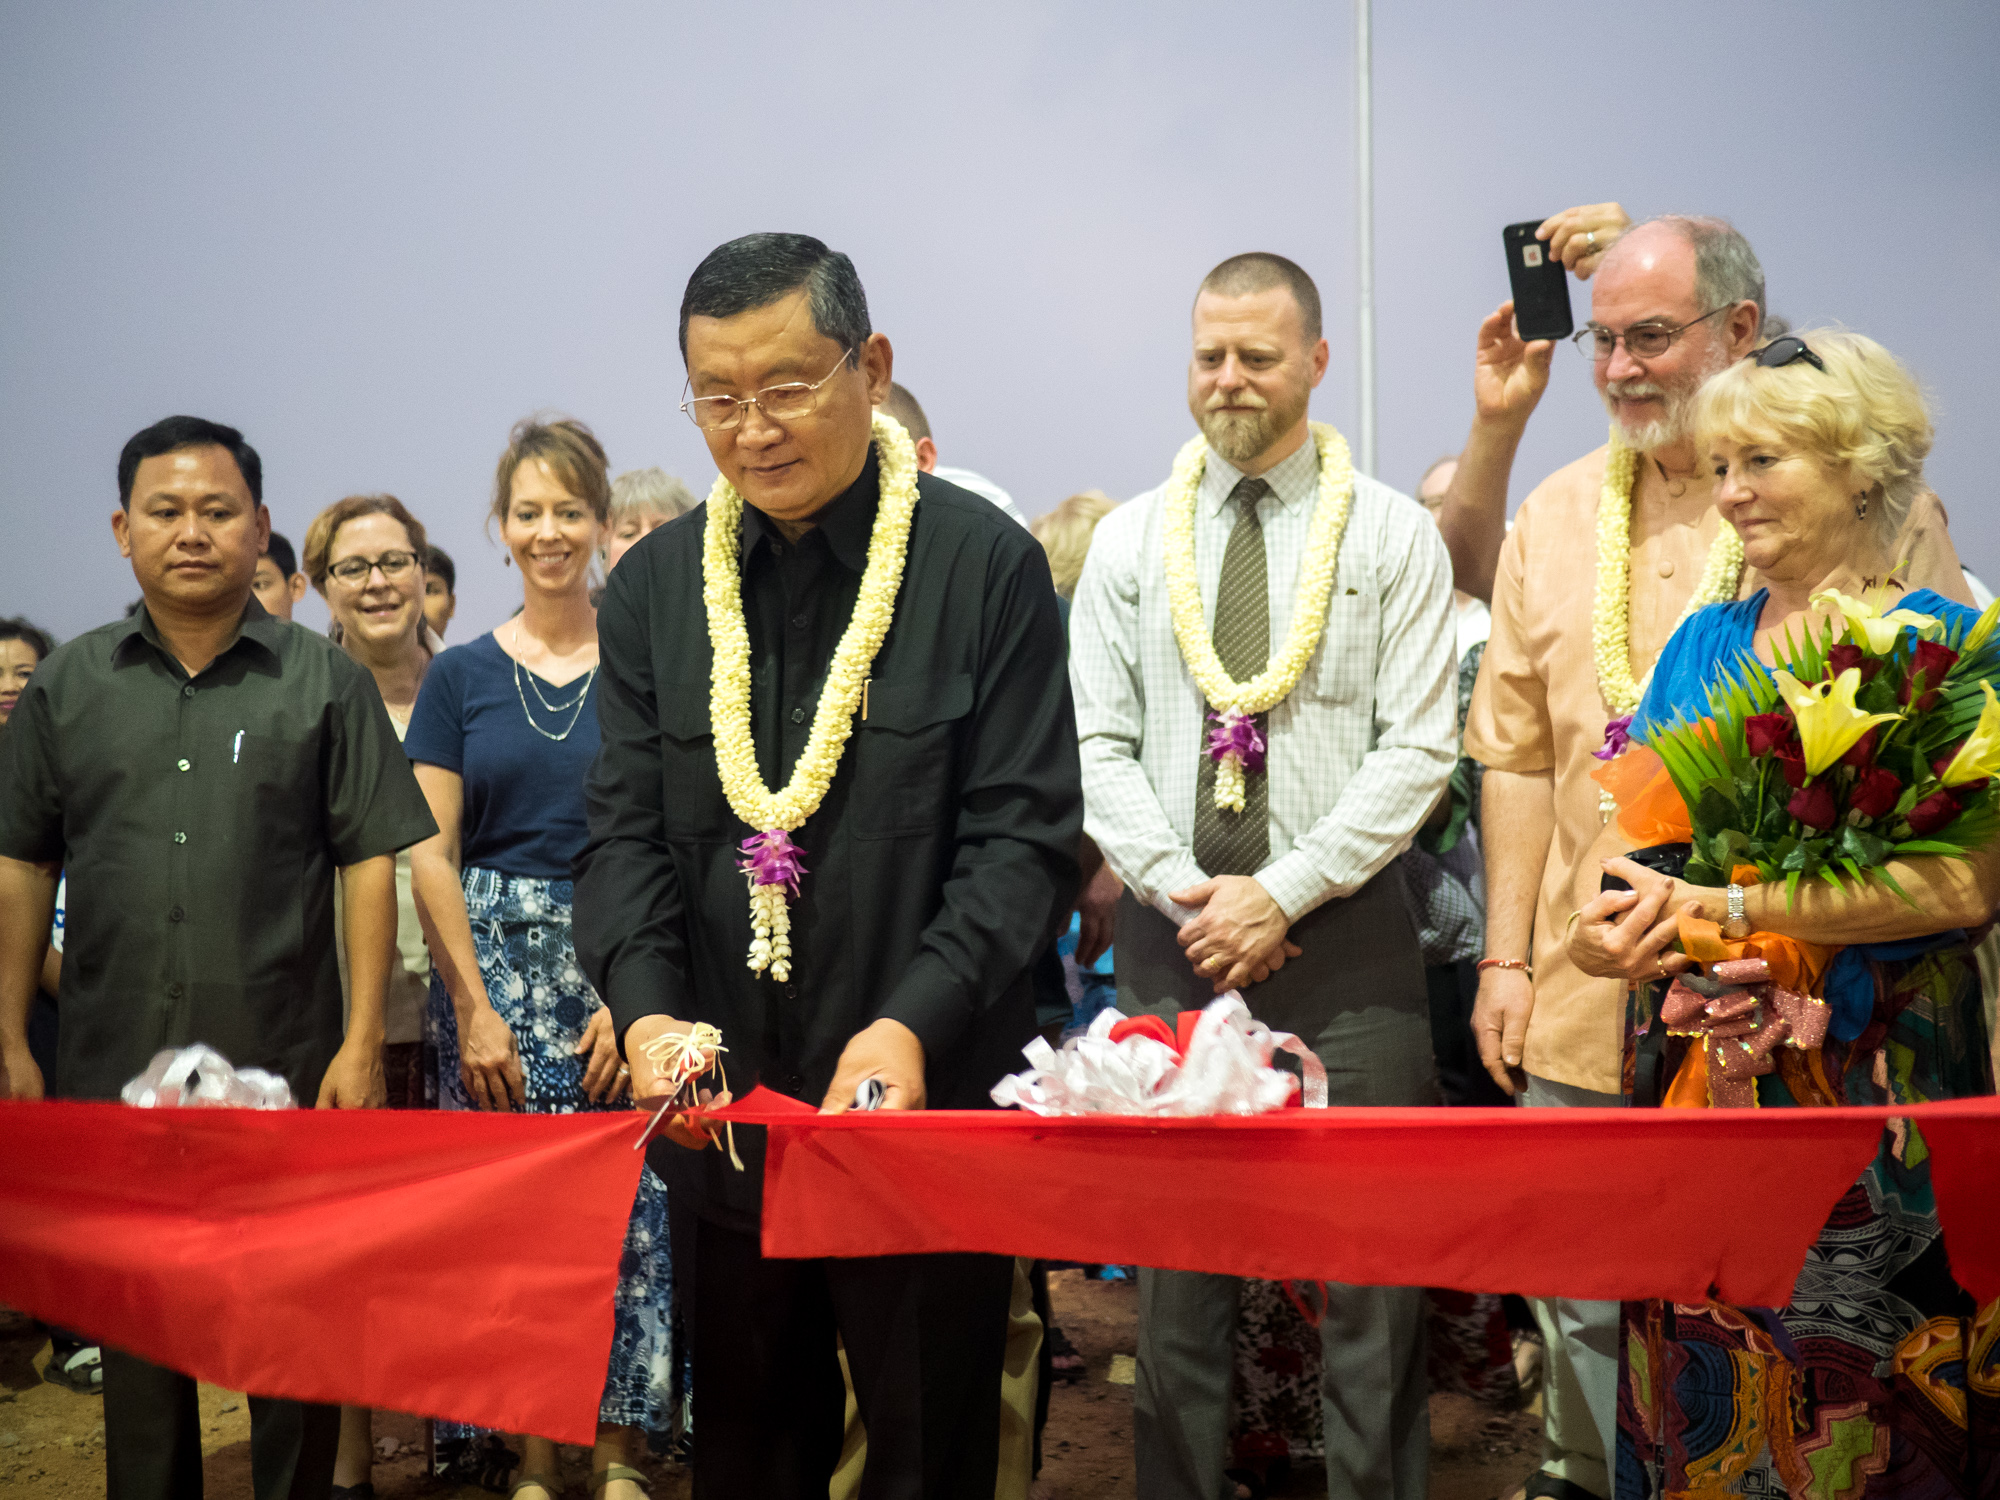 The governor of Battambang Province cuts the ribbon at the Asia's Hope secondary school dedication.